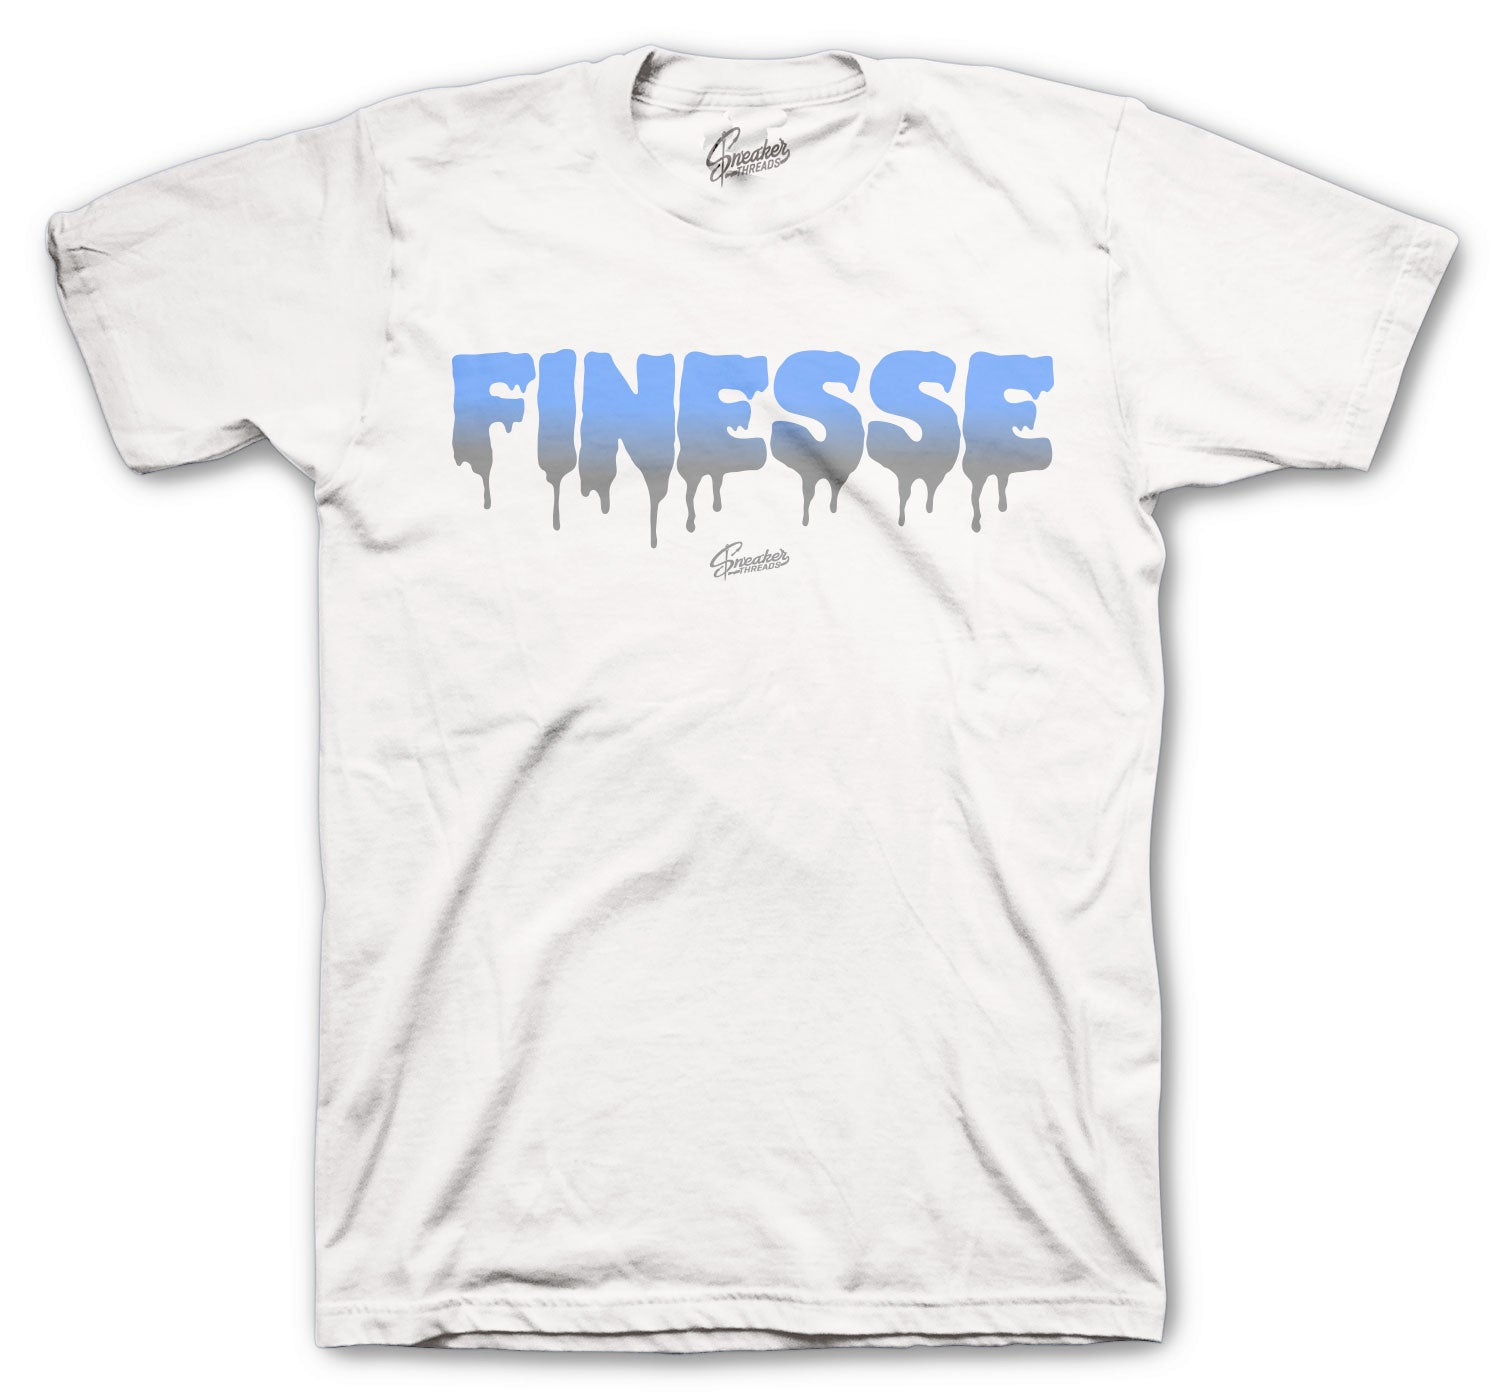 Jordan 3 UNC Shirt - Finesse - White